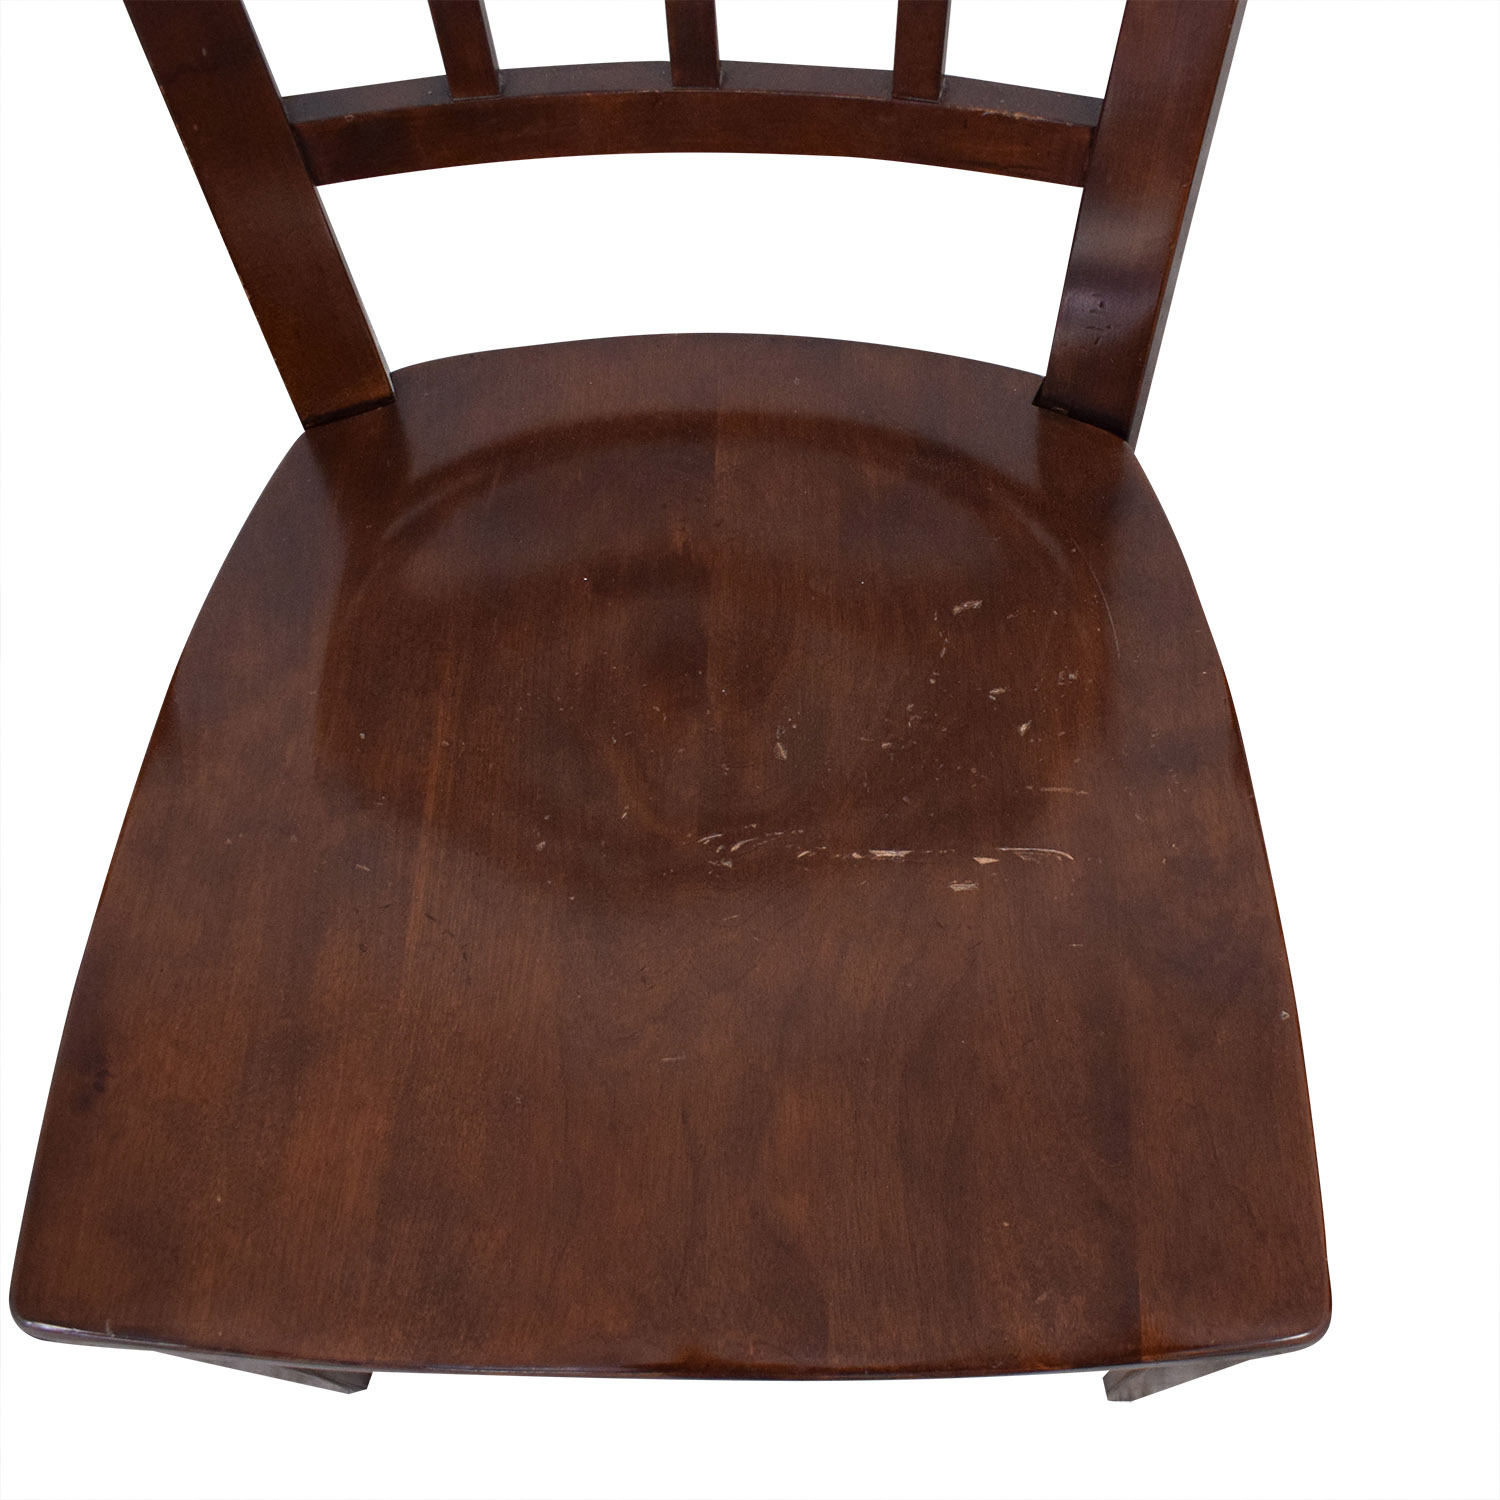 Stickley Furniture Stickley Furniture Cambridgeport Side Chairs dimensions